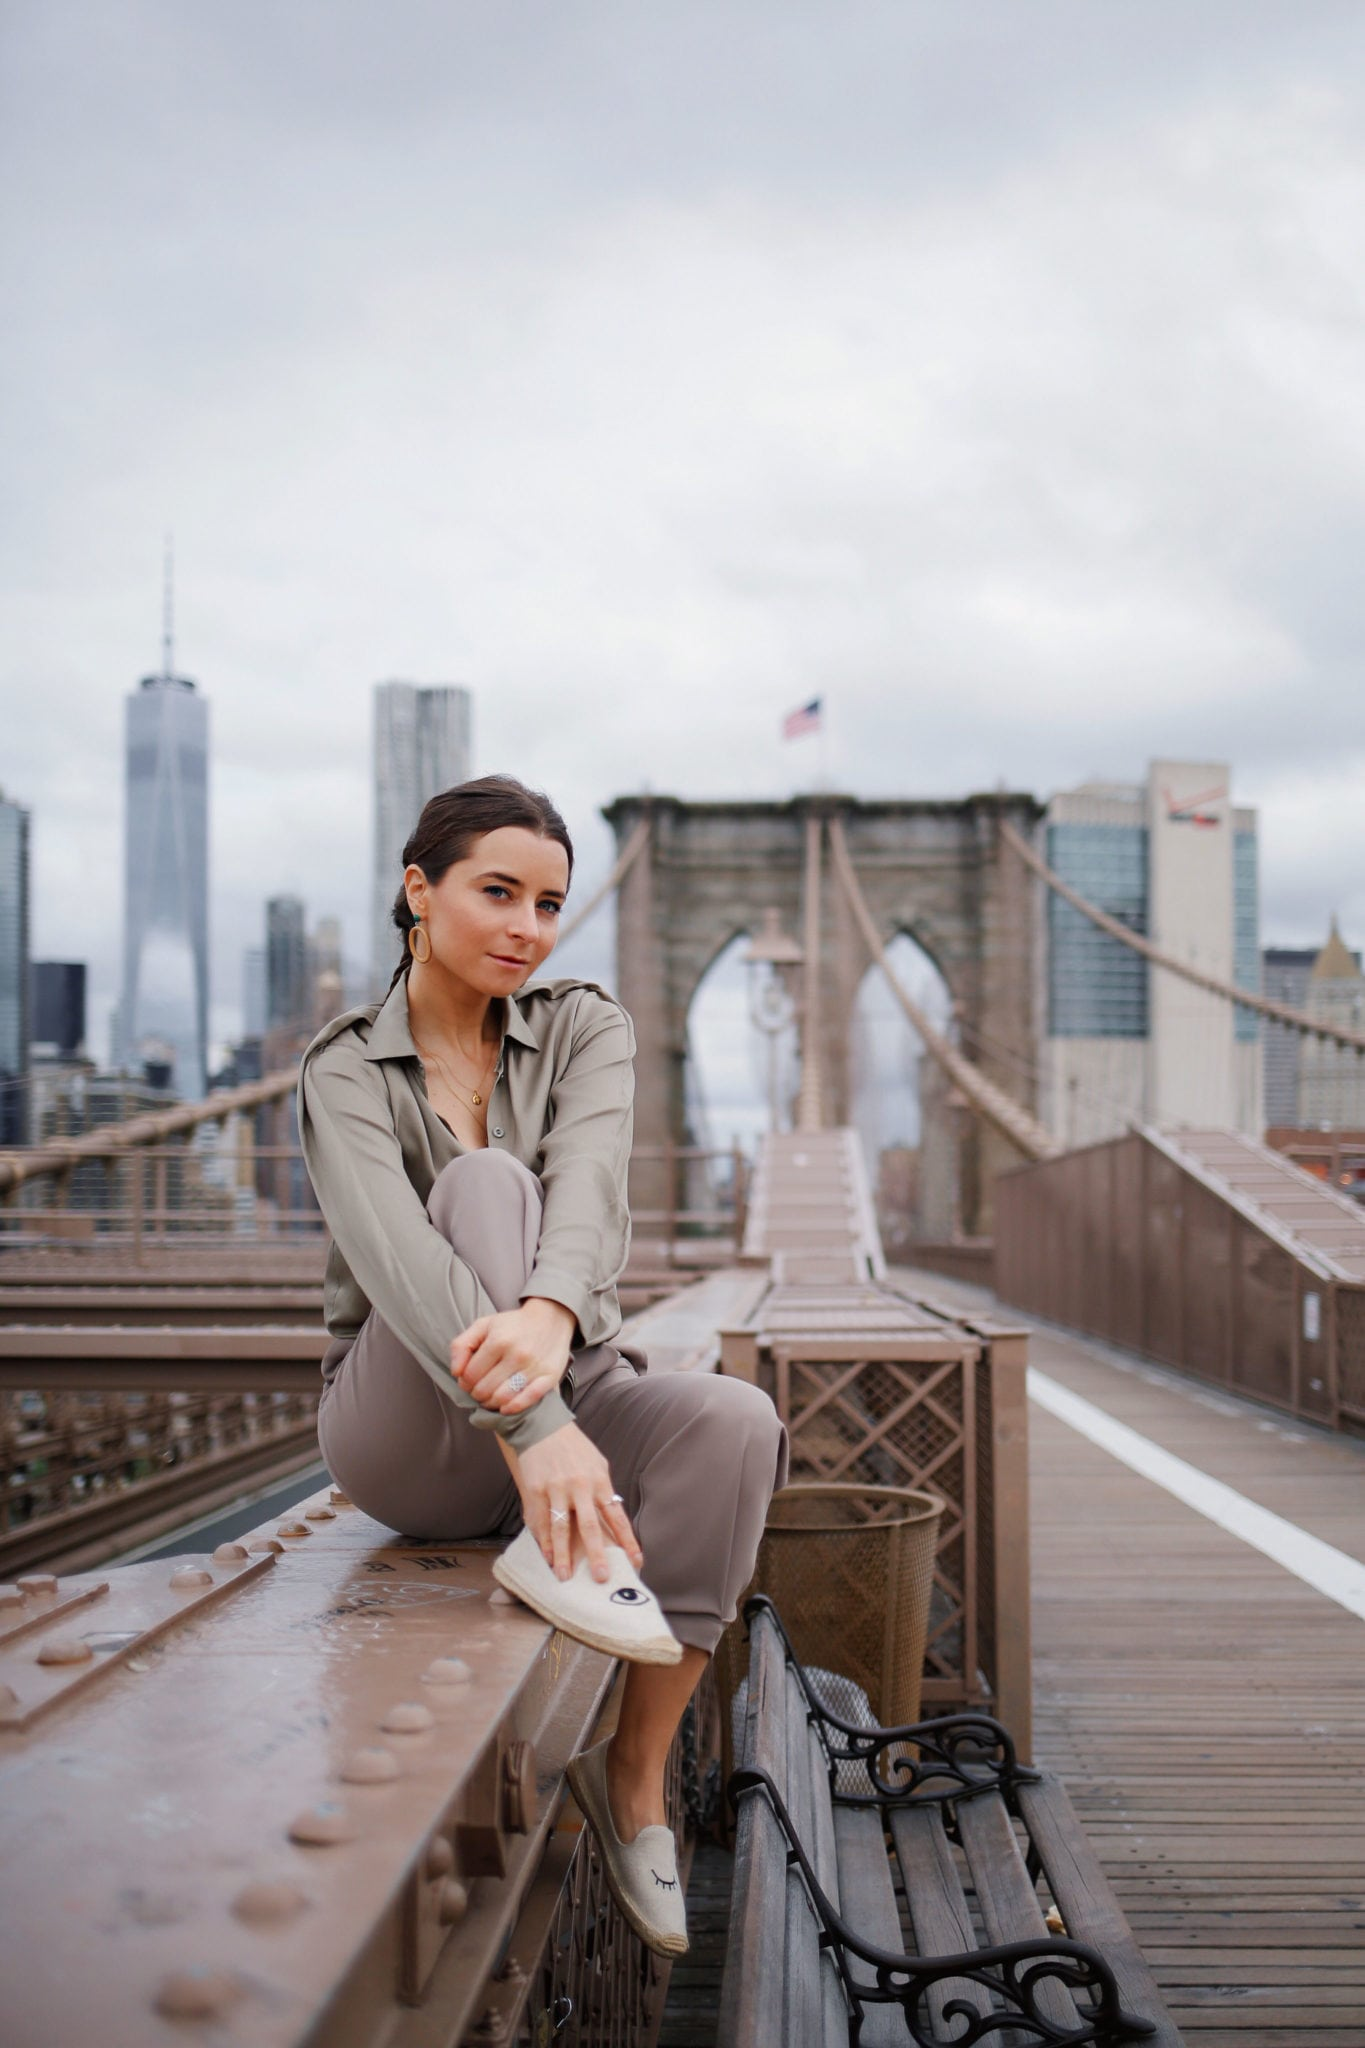 New York Inspiration Fashion Blog Bogdar Army Effortless Chic Outfit - Shot in New York - Brooklyn Bridge - Featuring Fashion Blogger Julia Comil